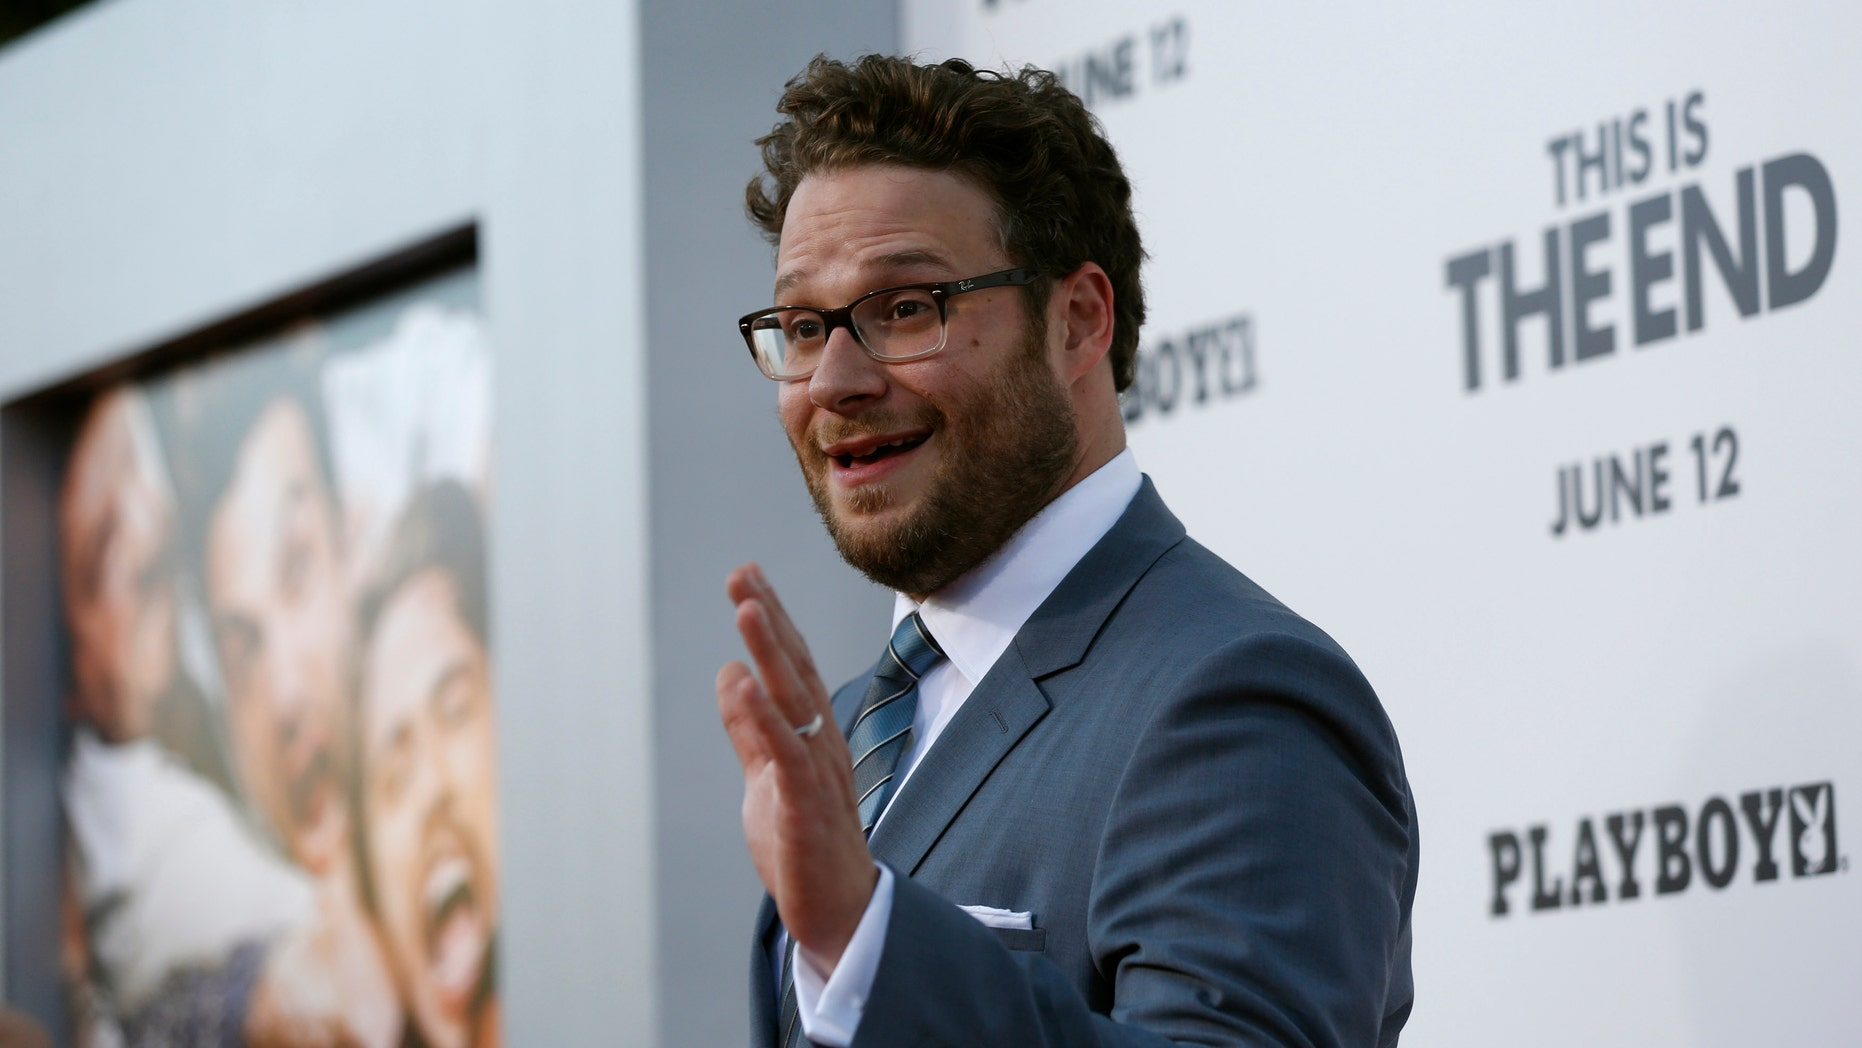 """June 3, 2013. Director, writer and cast member Seth Rogen waves at the premiere of """"This Is the End"""" at the Regency Village Theatre in Los Angeles, California."""